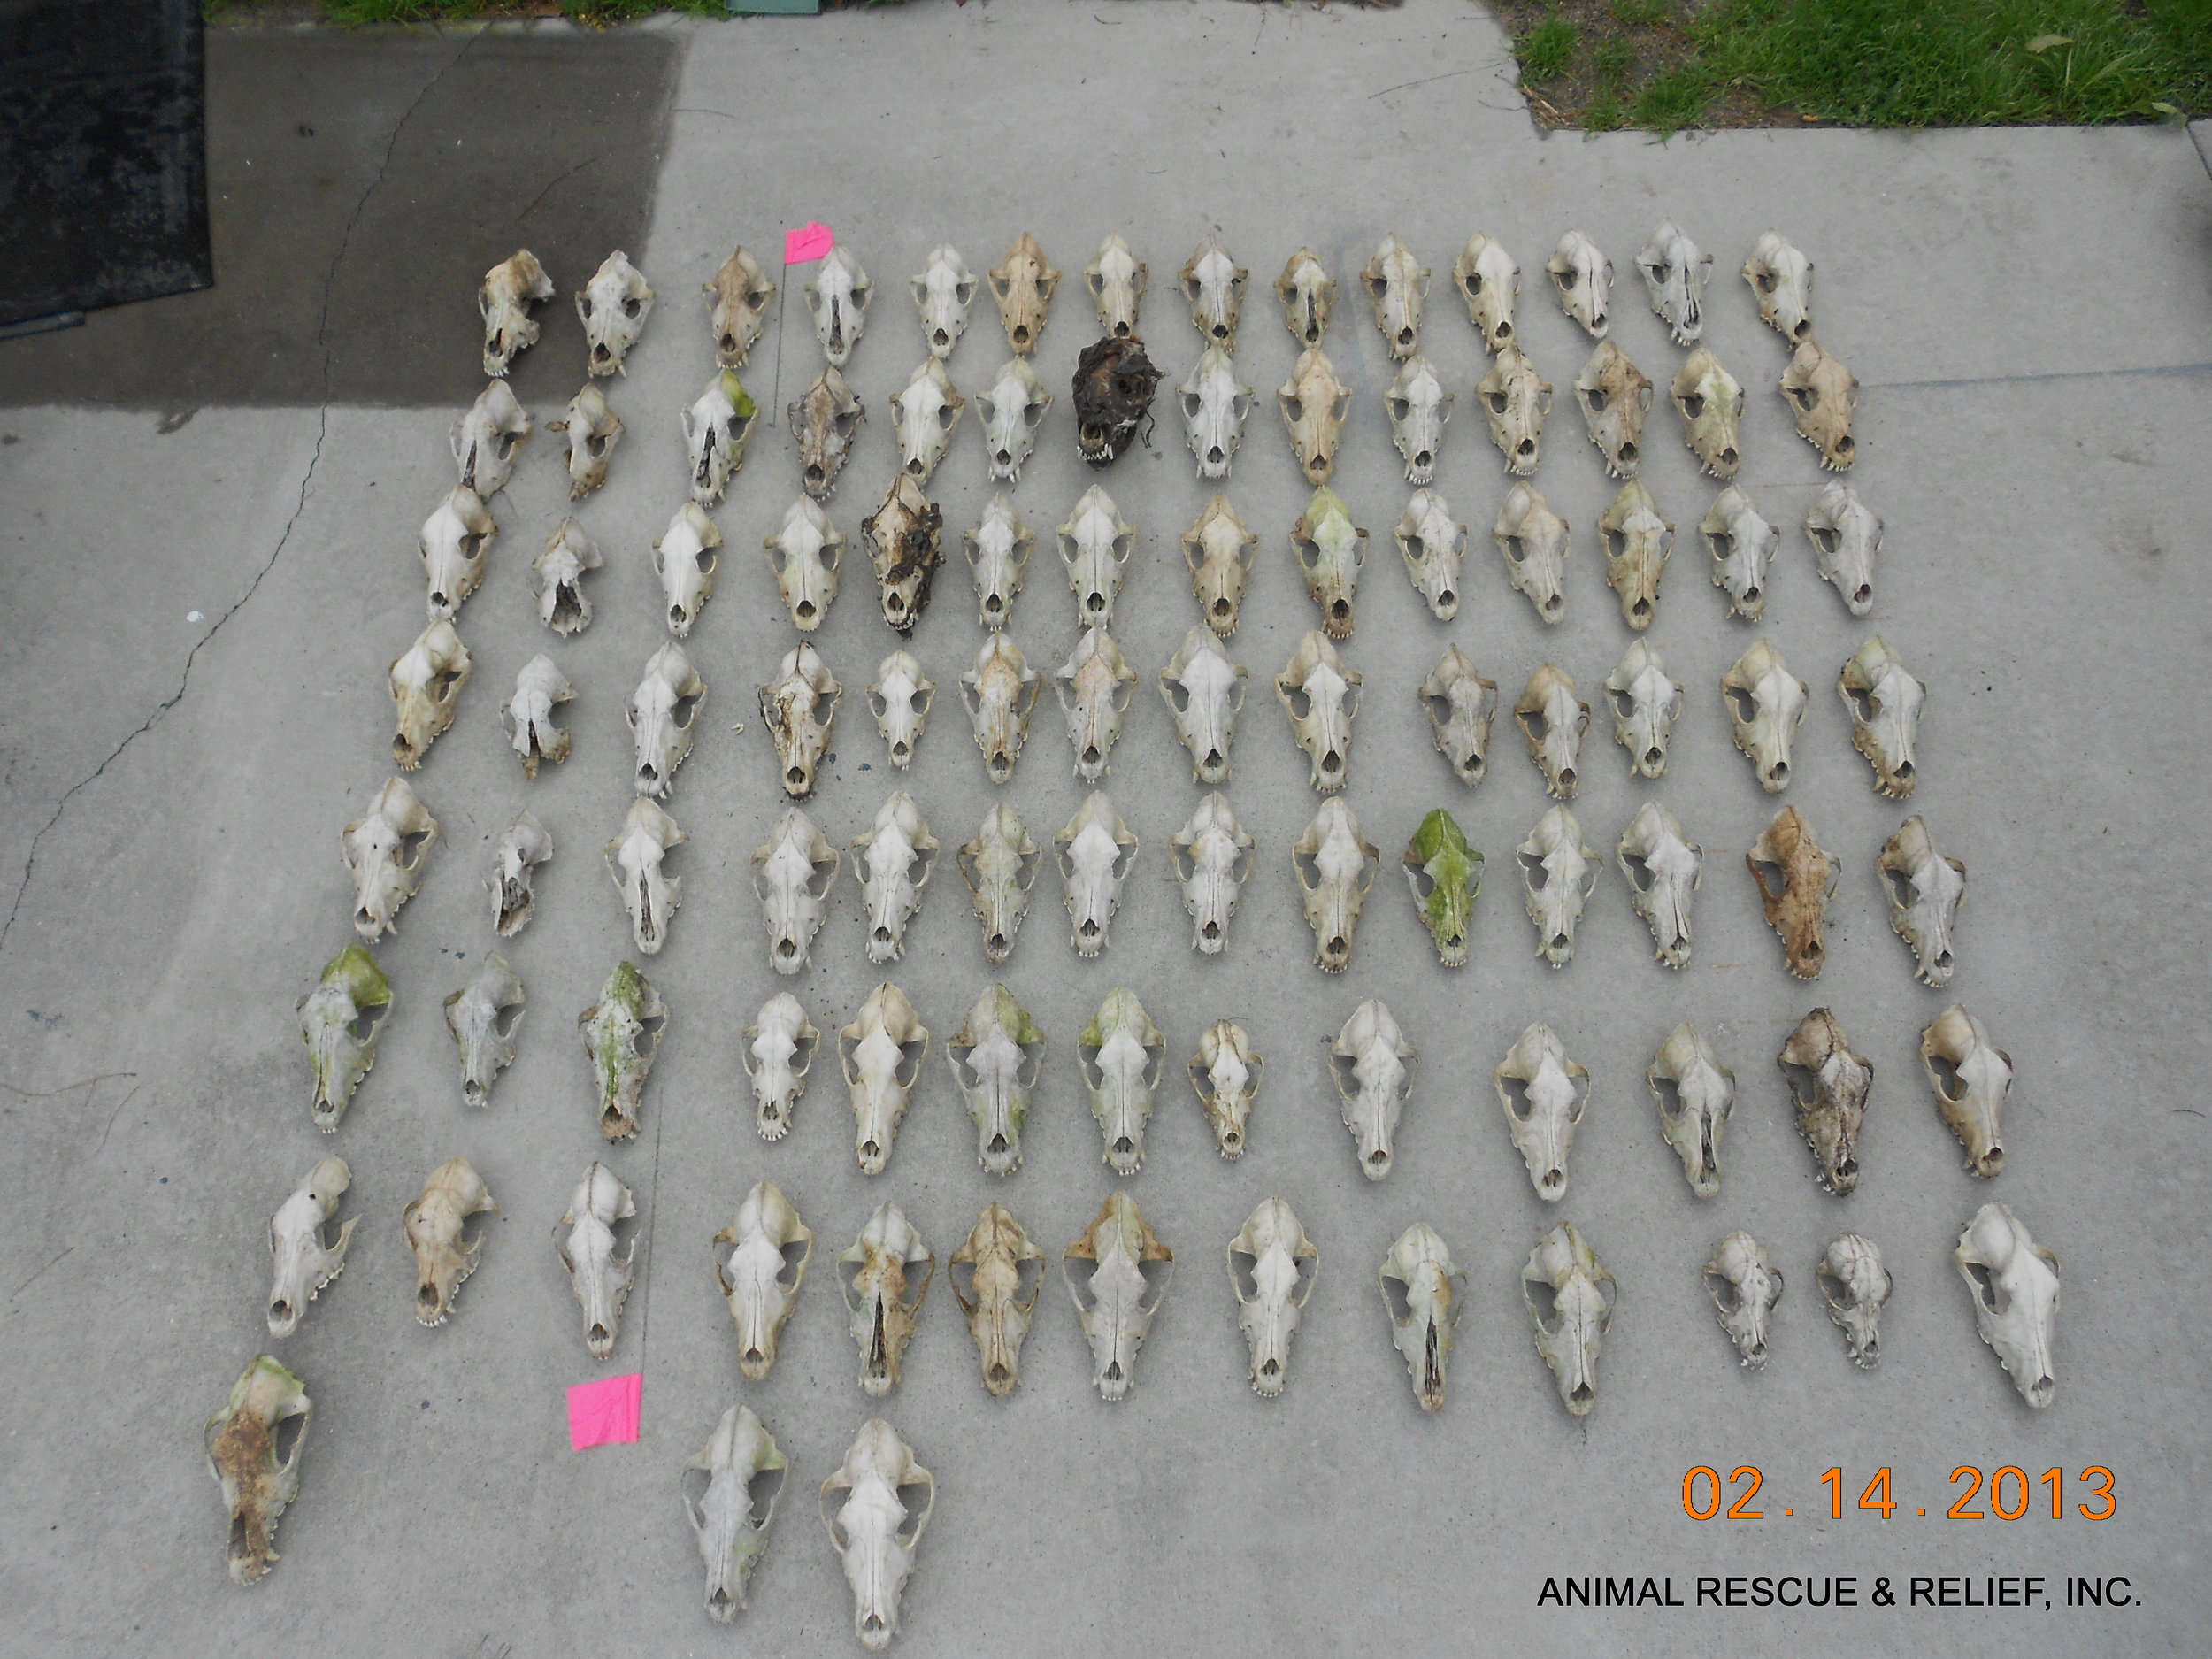 Haunting image of 101 dog skulls recovered on scene.  More than 200 remains were discovered.